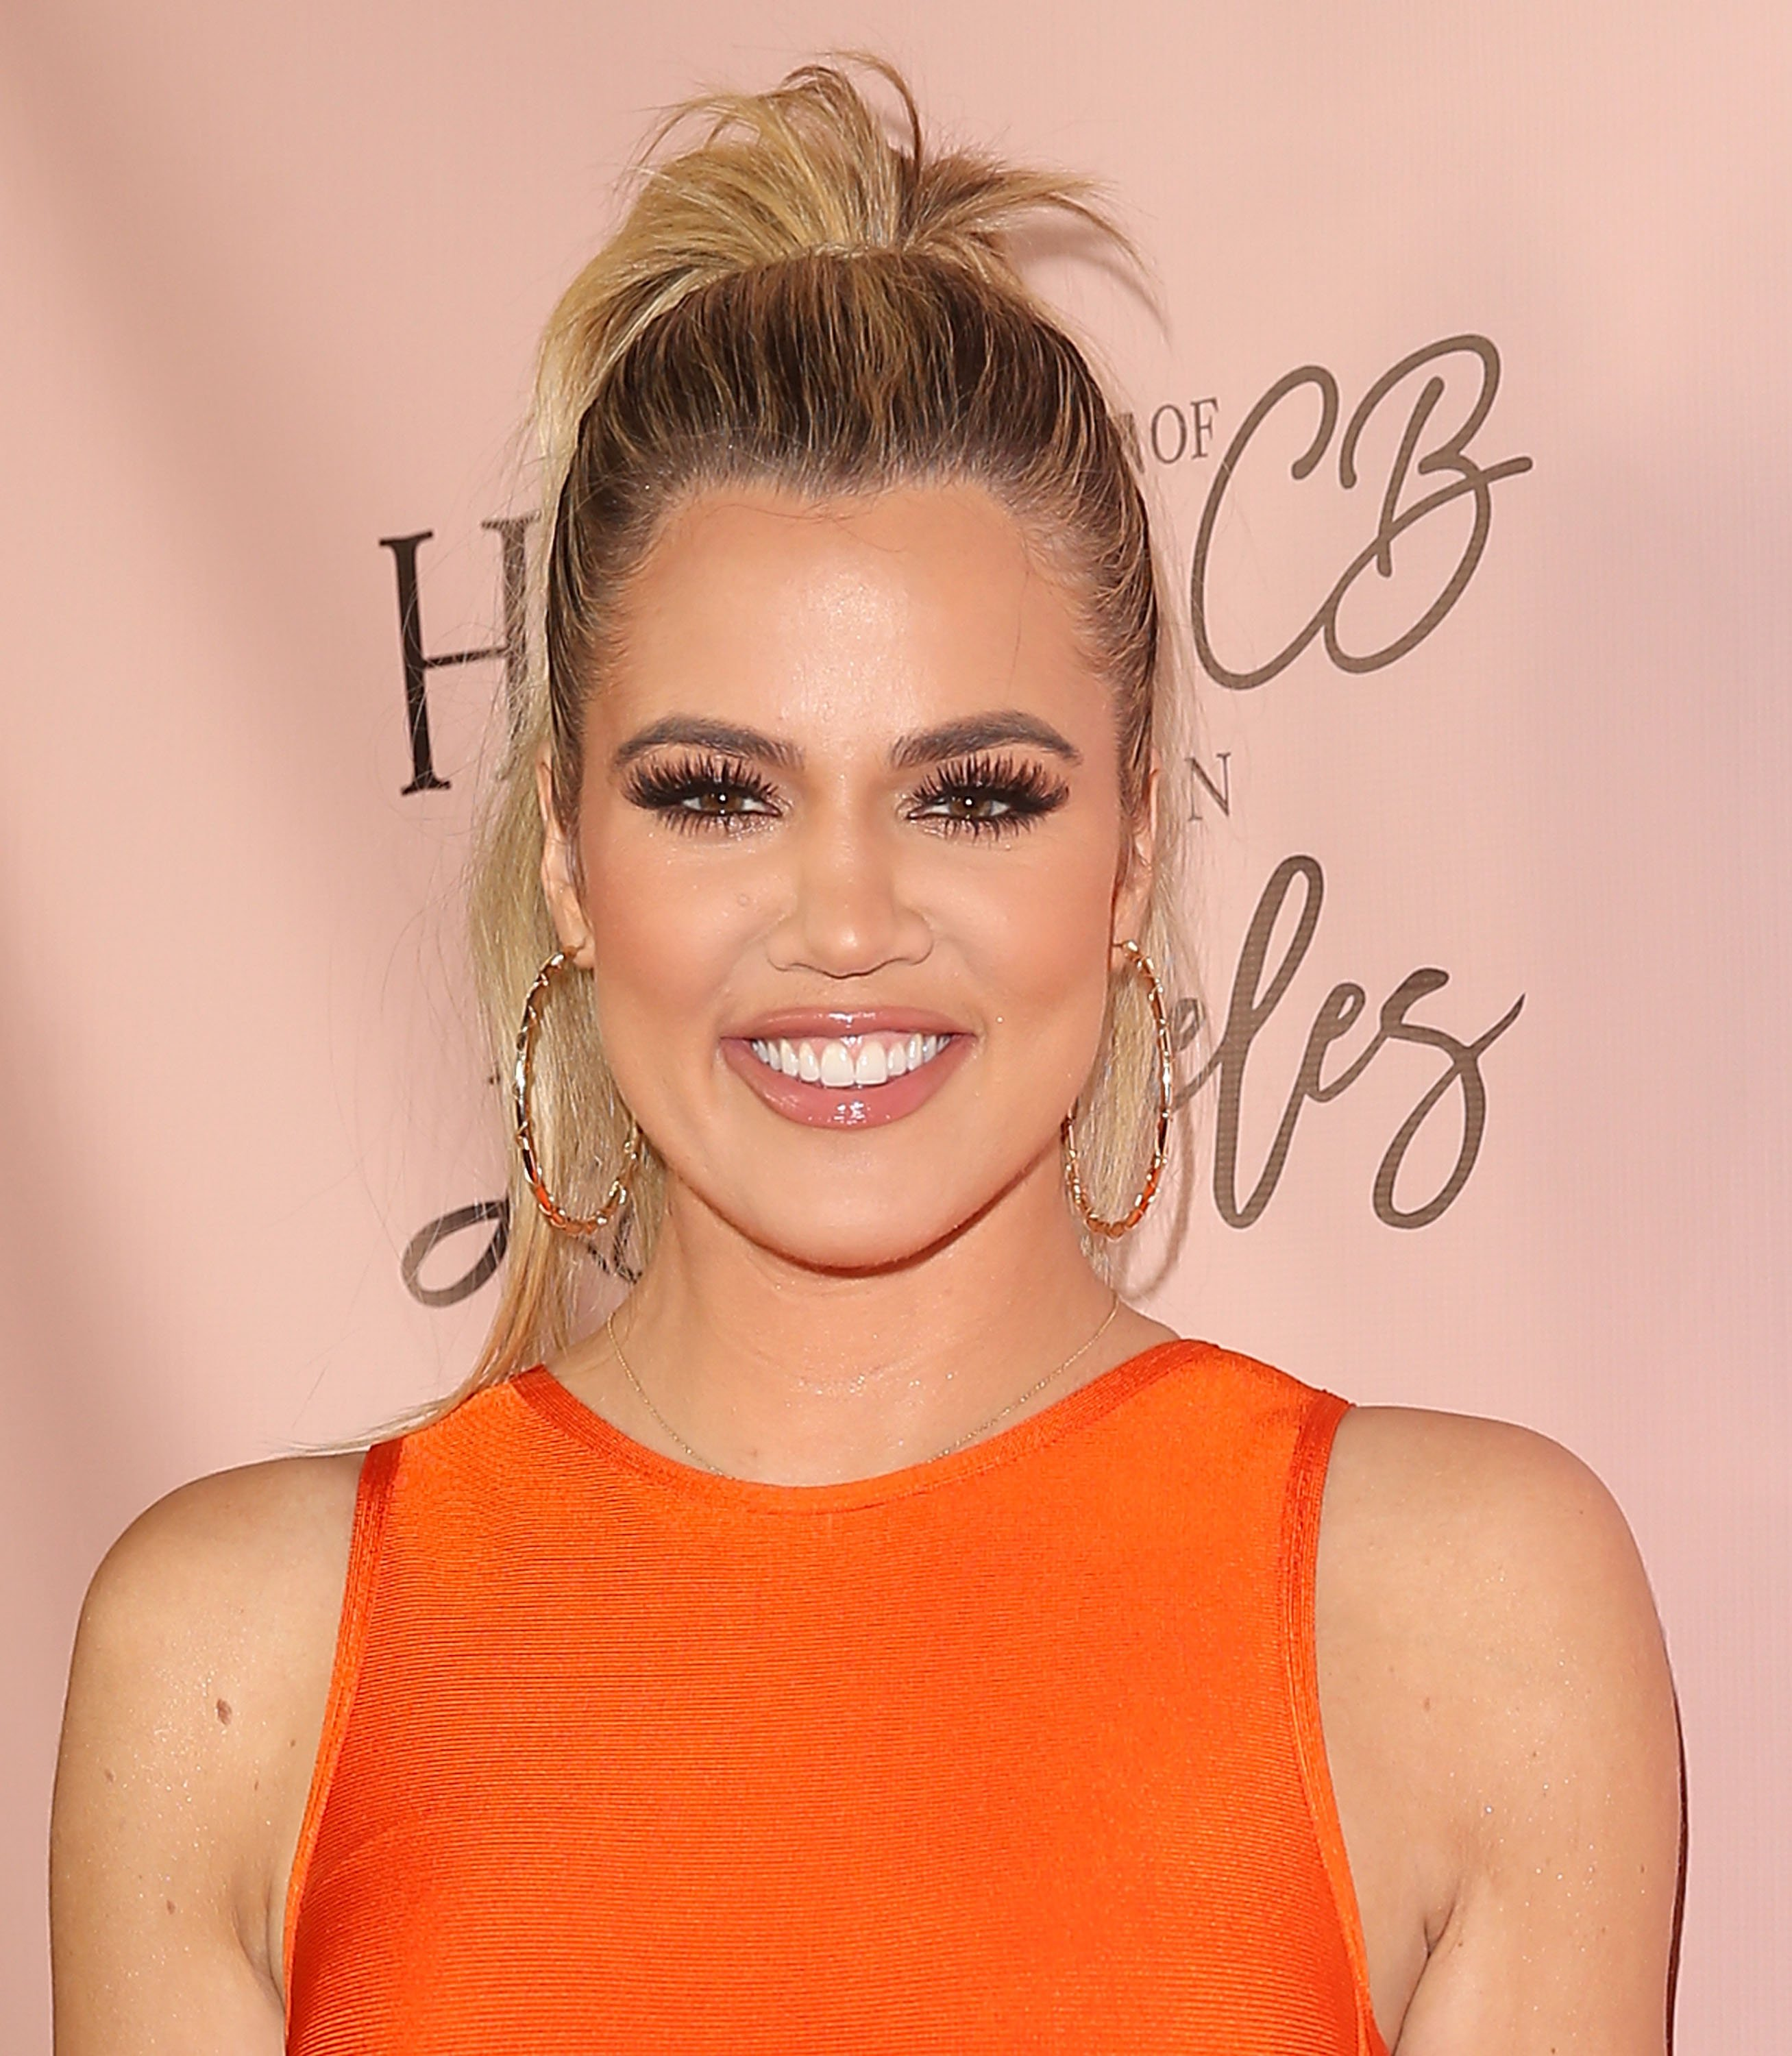 Khloe Kardashian arrives at the House of CB Flagship Store Launch on June 14, 2016 in West Hollywood, California. | Source: Getty Images